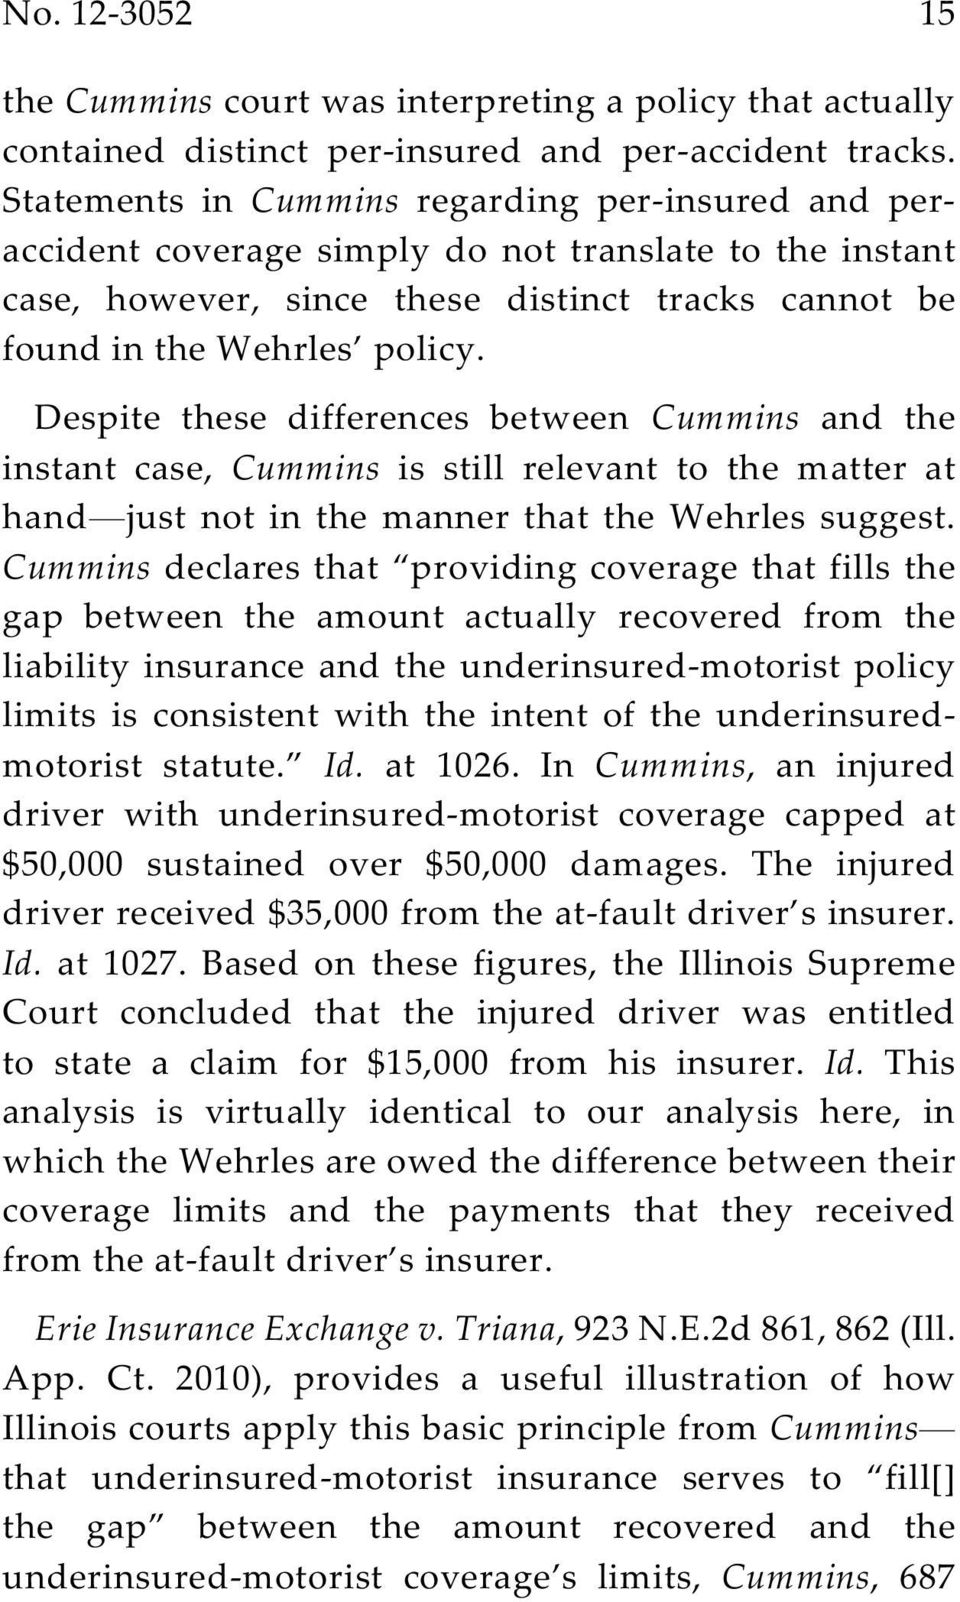 Despite these differences between Cummins and the instant case, Cummins is still relevant to the matter at hand just not in the manner that the Wehrles suggest.